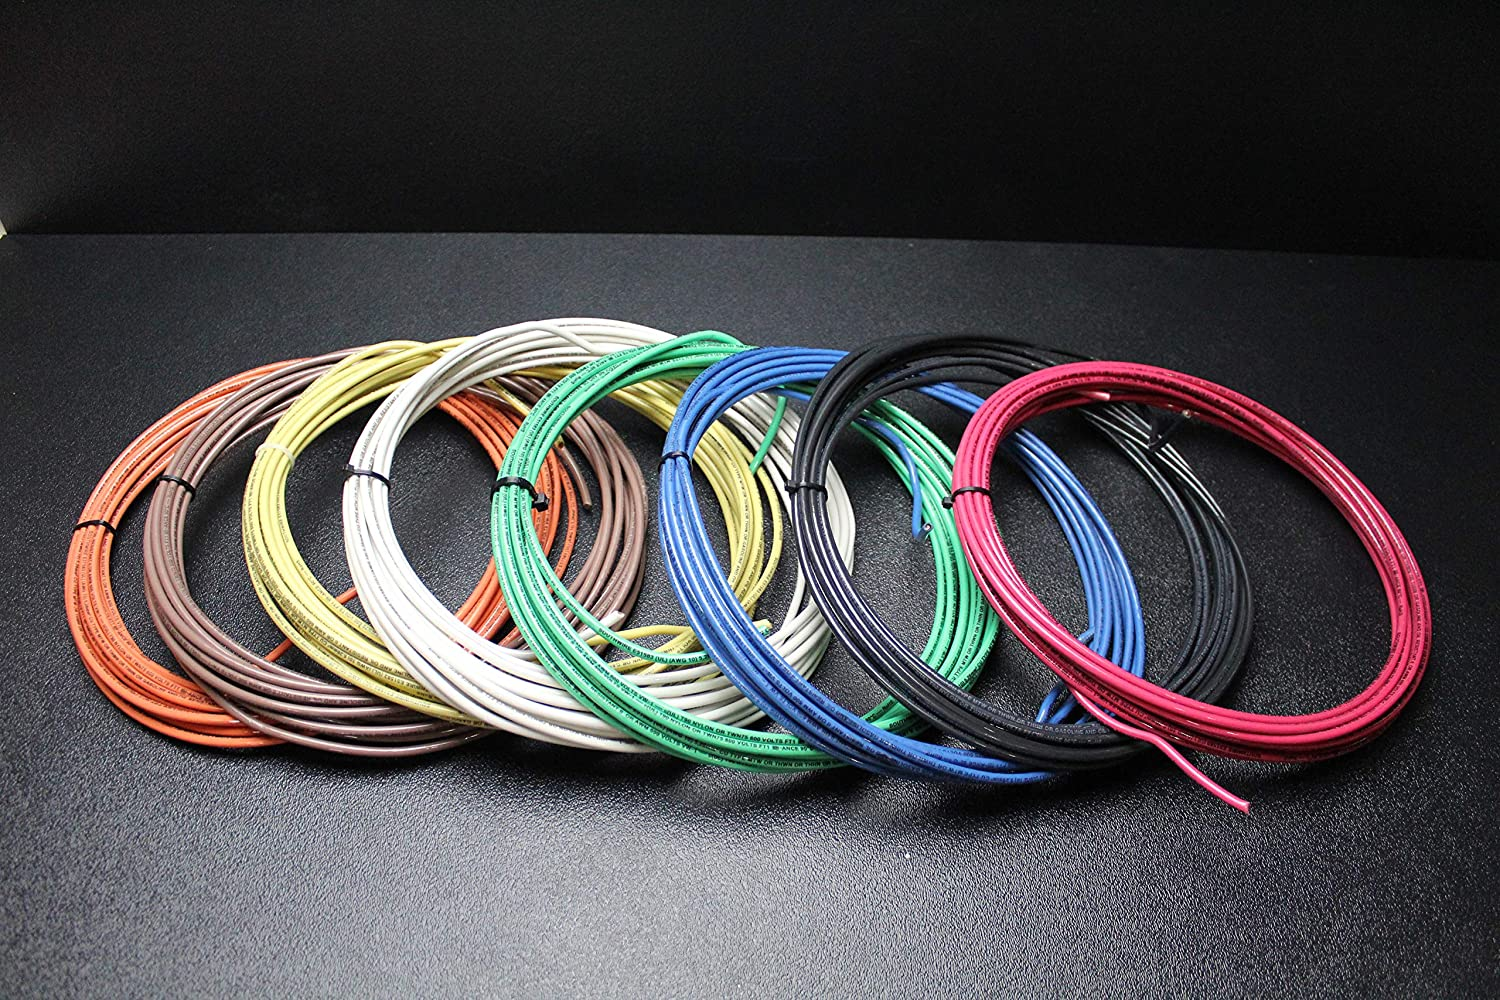 10 Gauge THHN Wire Stranded Pick 3 Colors 25 FT Each THWN 600V AWN Cable AWG